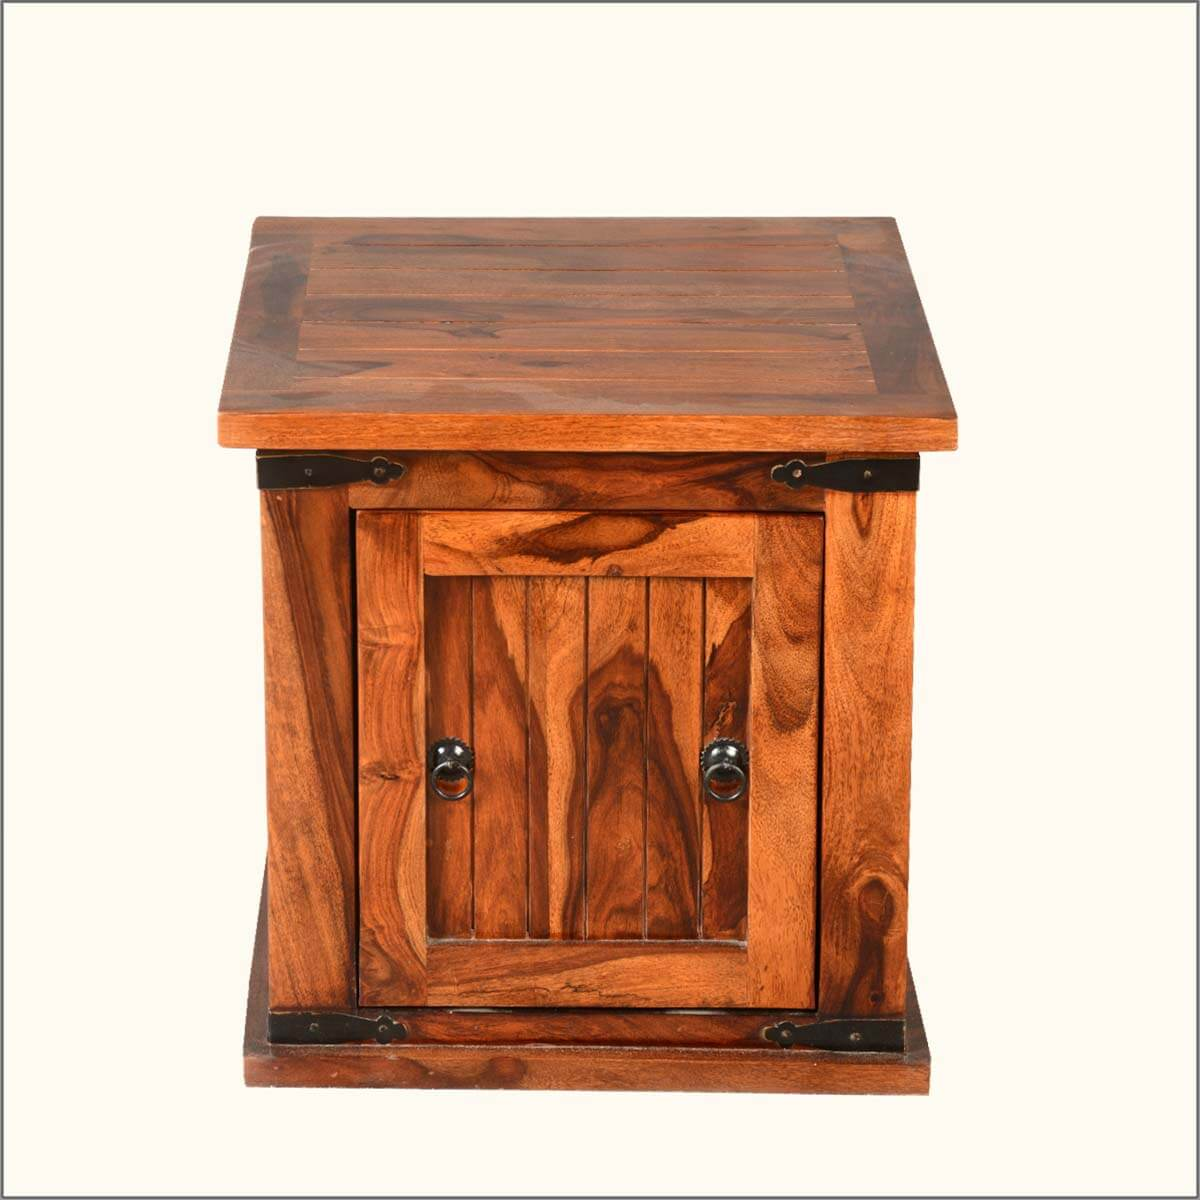 Amazing photo of Home Solid Wood Square Storage Box Trunk Sofa Side End Table with #B48317 color and 1200x1200 pixels